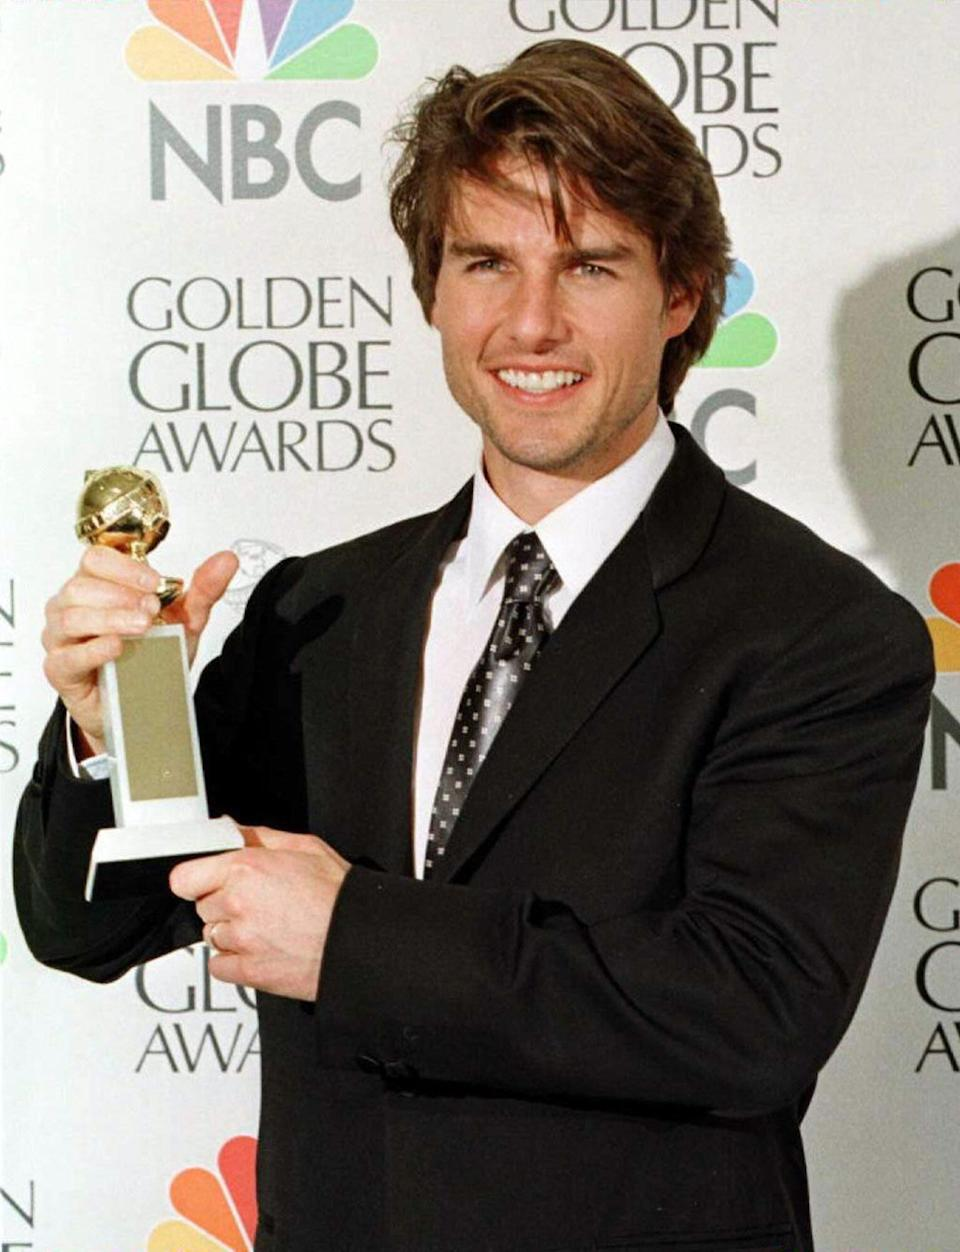 """Tom Cruise holds his award for Best Actor in a Motion Picture Comedy for his role in """"Jerry Maguire"""" 19 January at the 54th Annual Golden Globe Awards"""